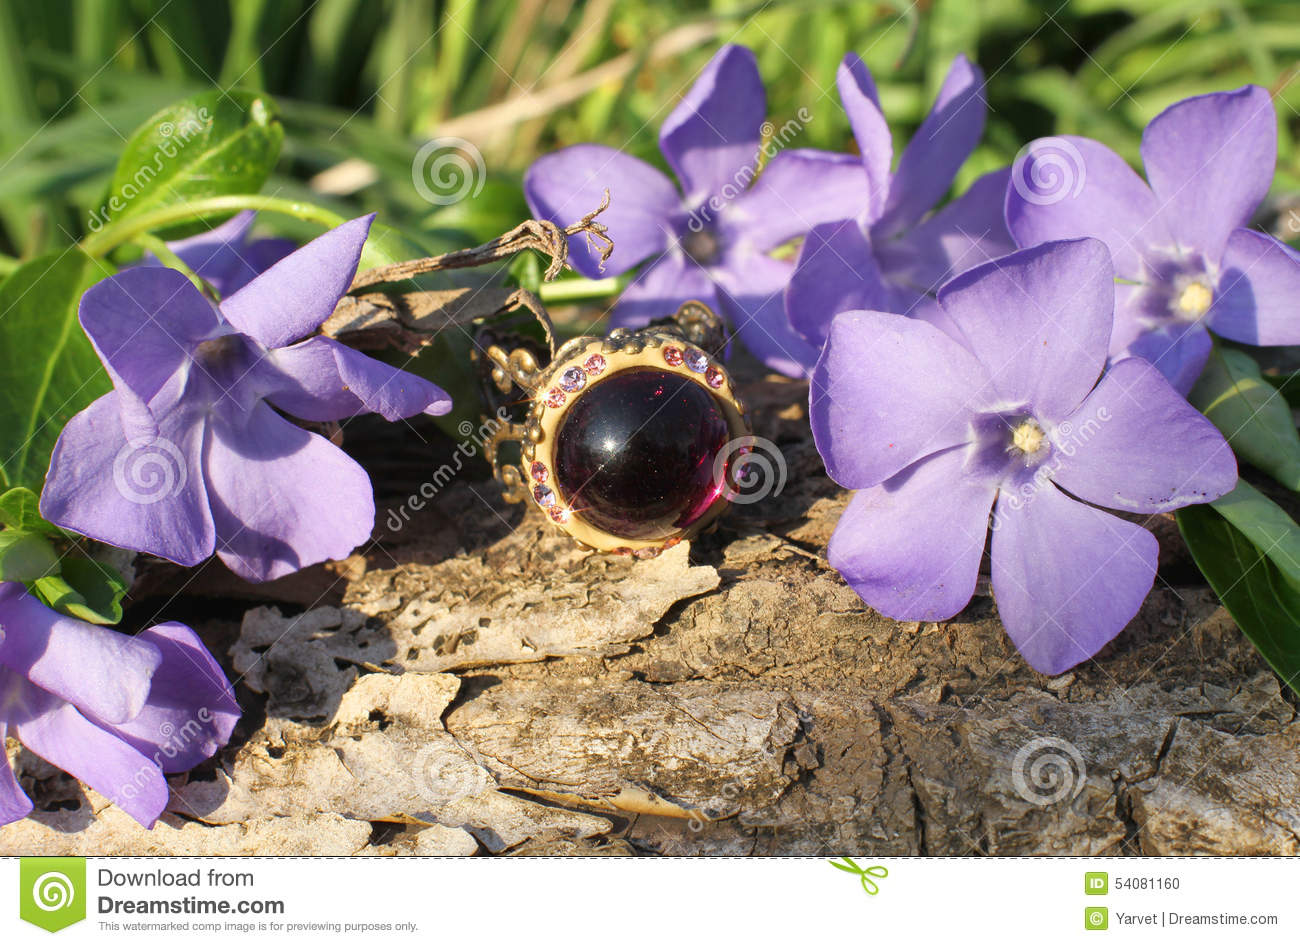 Charming Handmade glass ring on the nature background